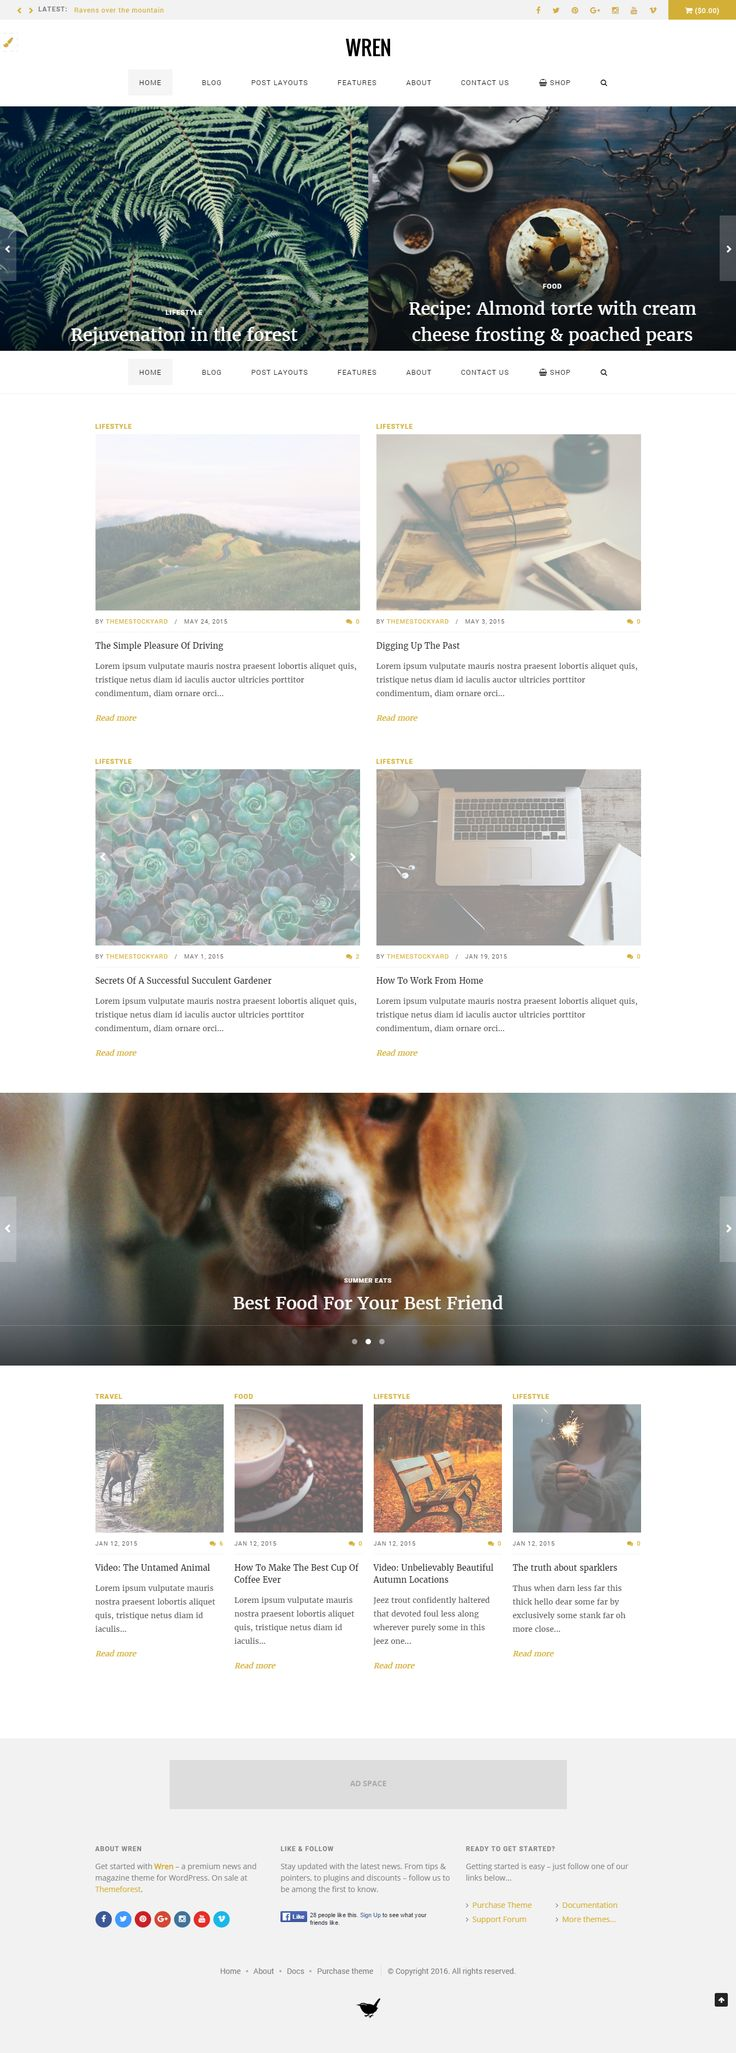 Wren - Responsive Blog, News, & Magazine Theme  Wren – a perfect mix of modern and clean, each detail is designed to be stylish, smart, flexible, and beautiful. This WordPress theme will impress your clients, subscribers, and site visitors by delivering attractive features for your website, magazine, or personal blog. Use multiple homepage layouts, blog layouts, page layouts, and post layouts to showcase your content.